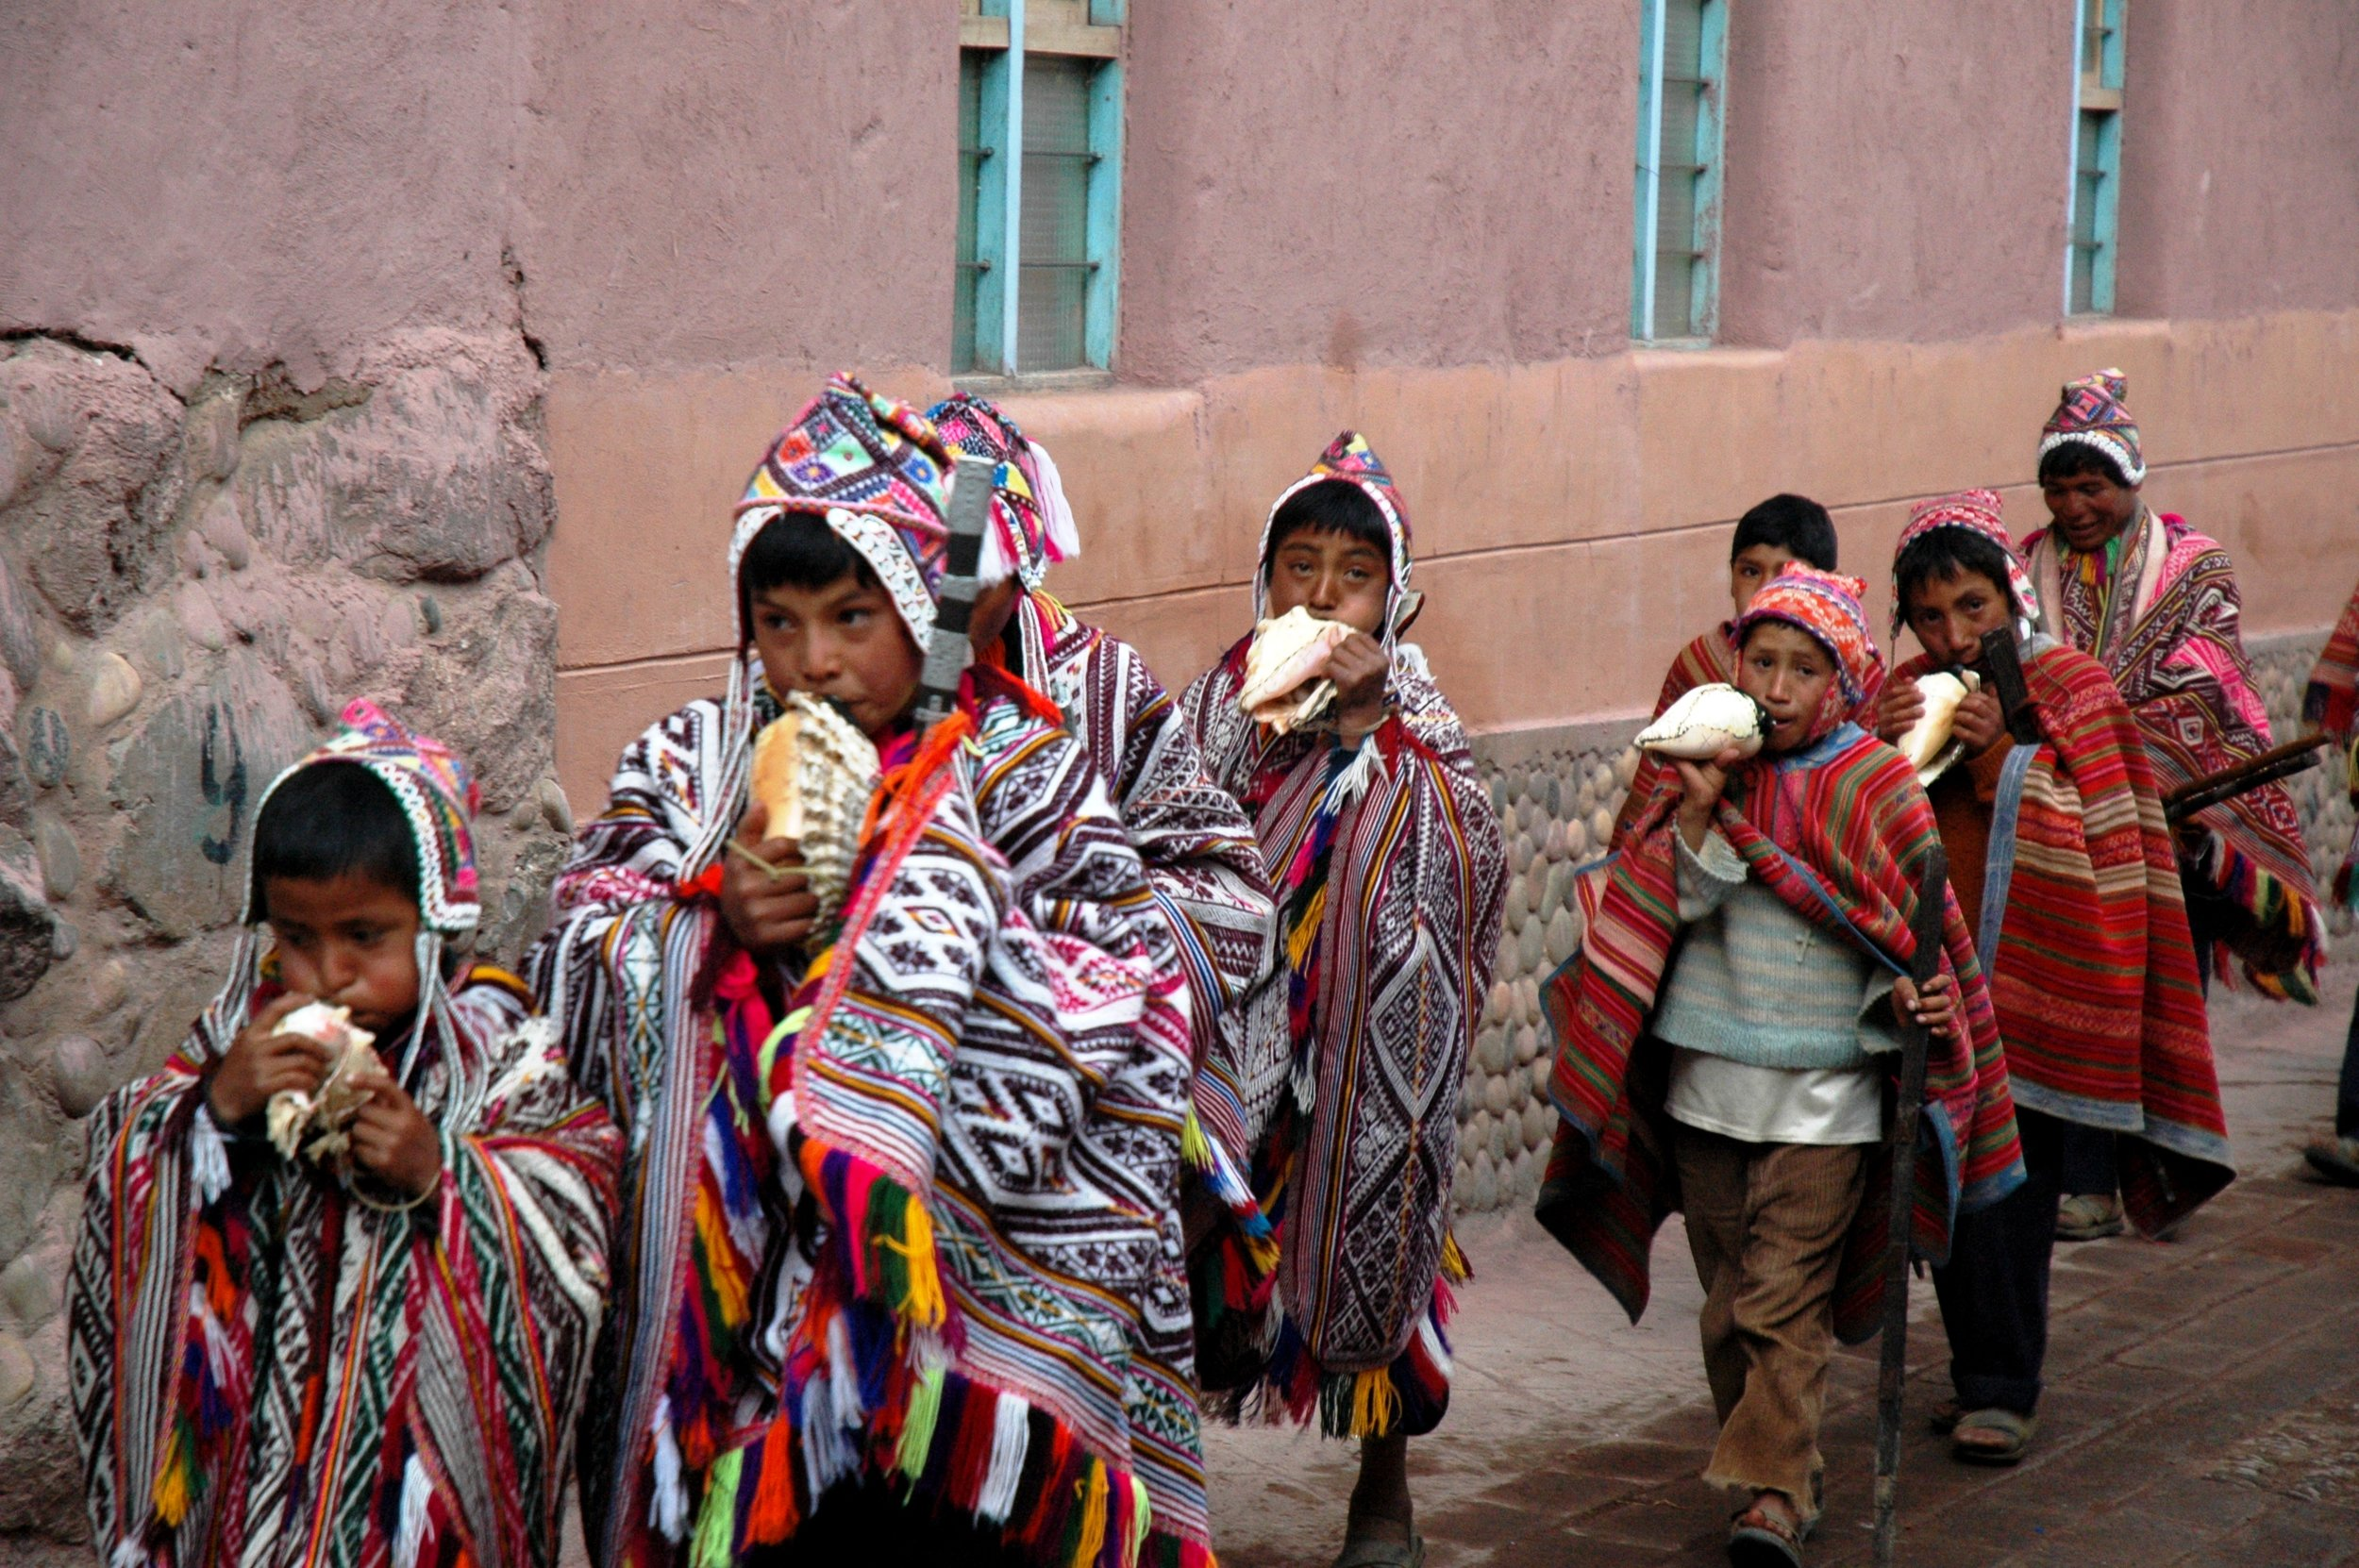 A traditional procession at the Pisac Market, Peru